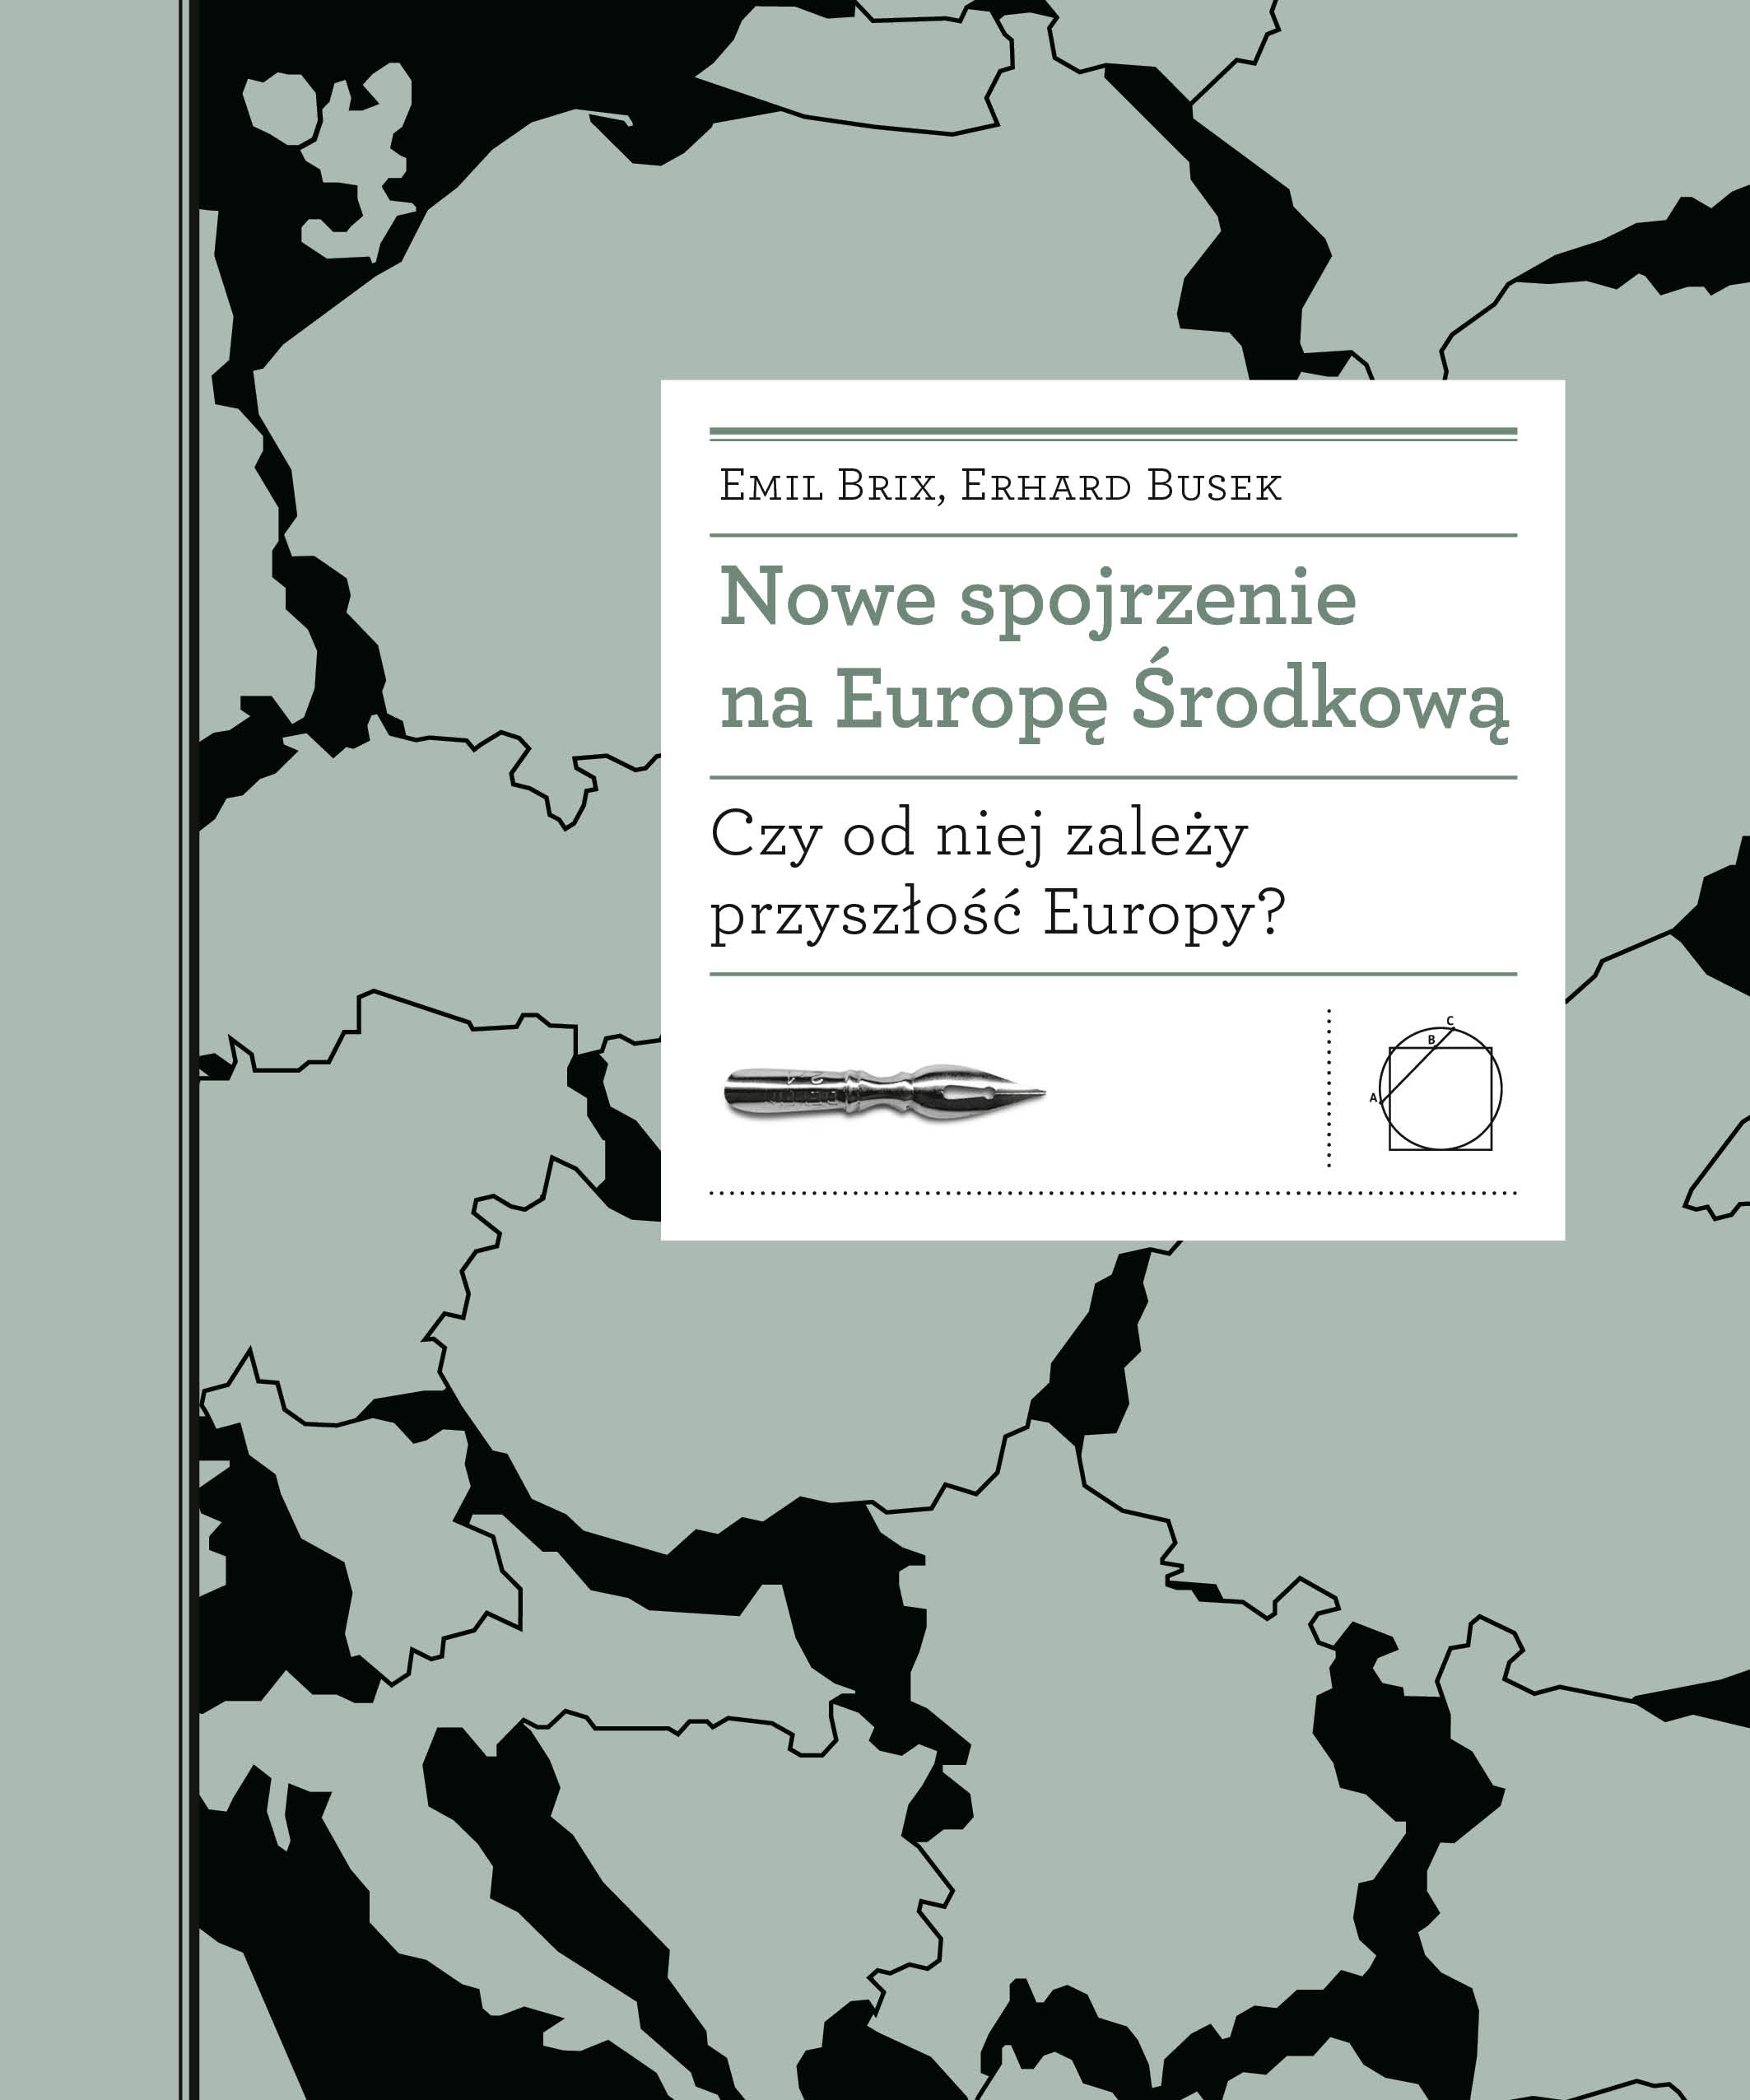 <i>Mitteleuropa Revisited. Does the future of Europe depend on it?</i>